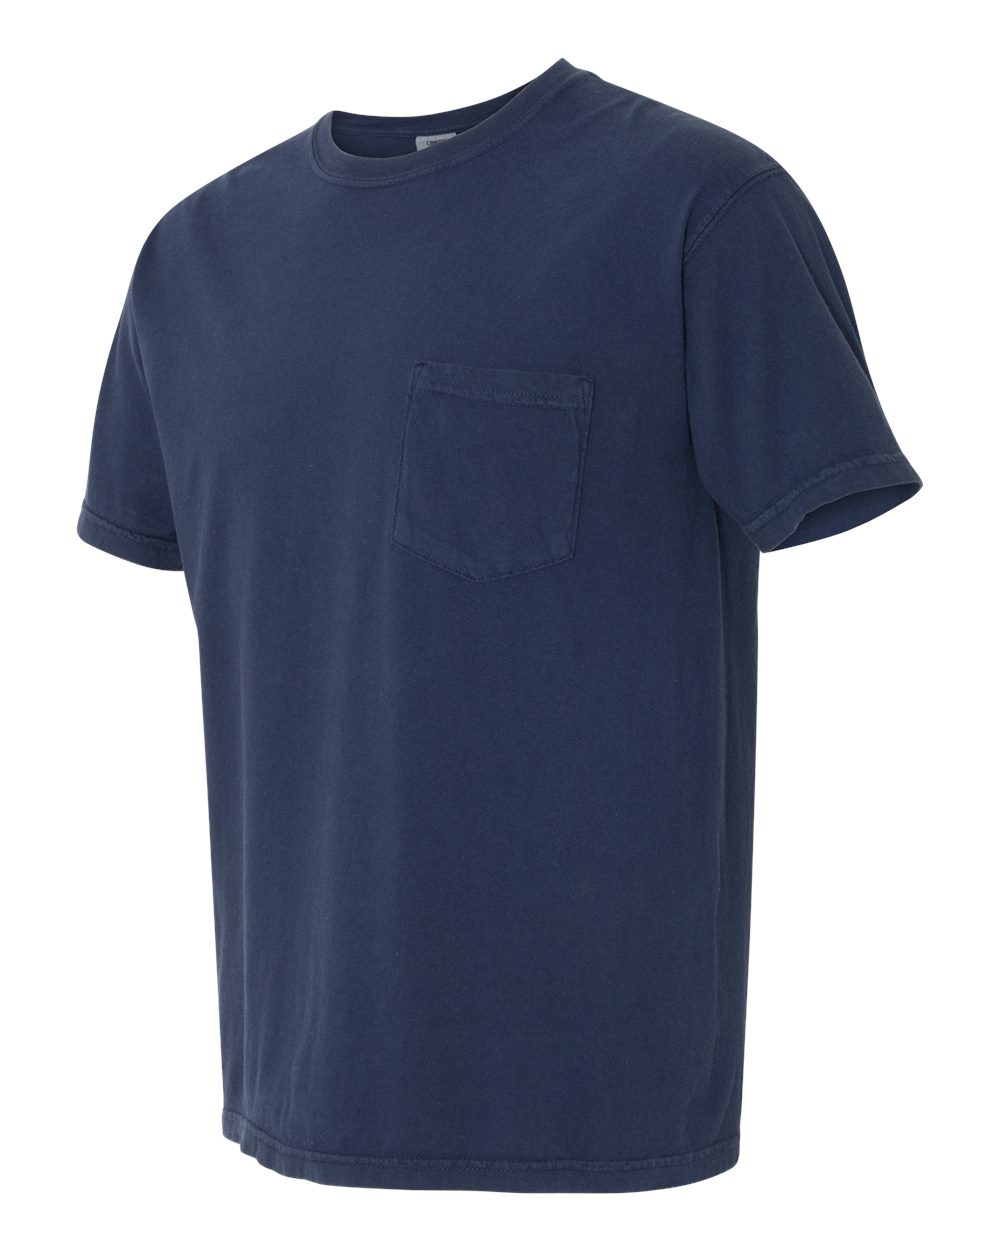 Comfort-Colors-Men-039-s-6-1-oz-Garment-Dyed-Pocket-T-Shirt-6030CC-S-3XL thumbnail 89